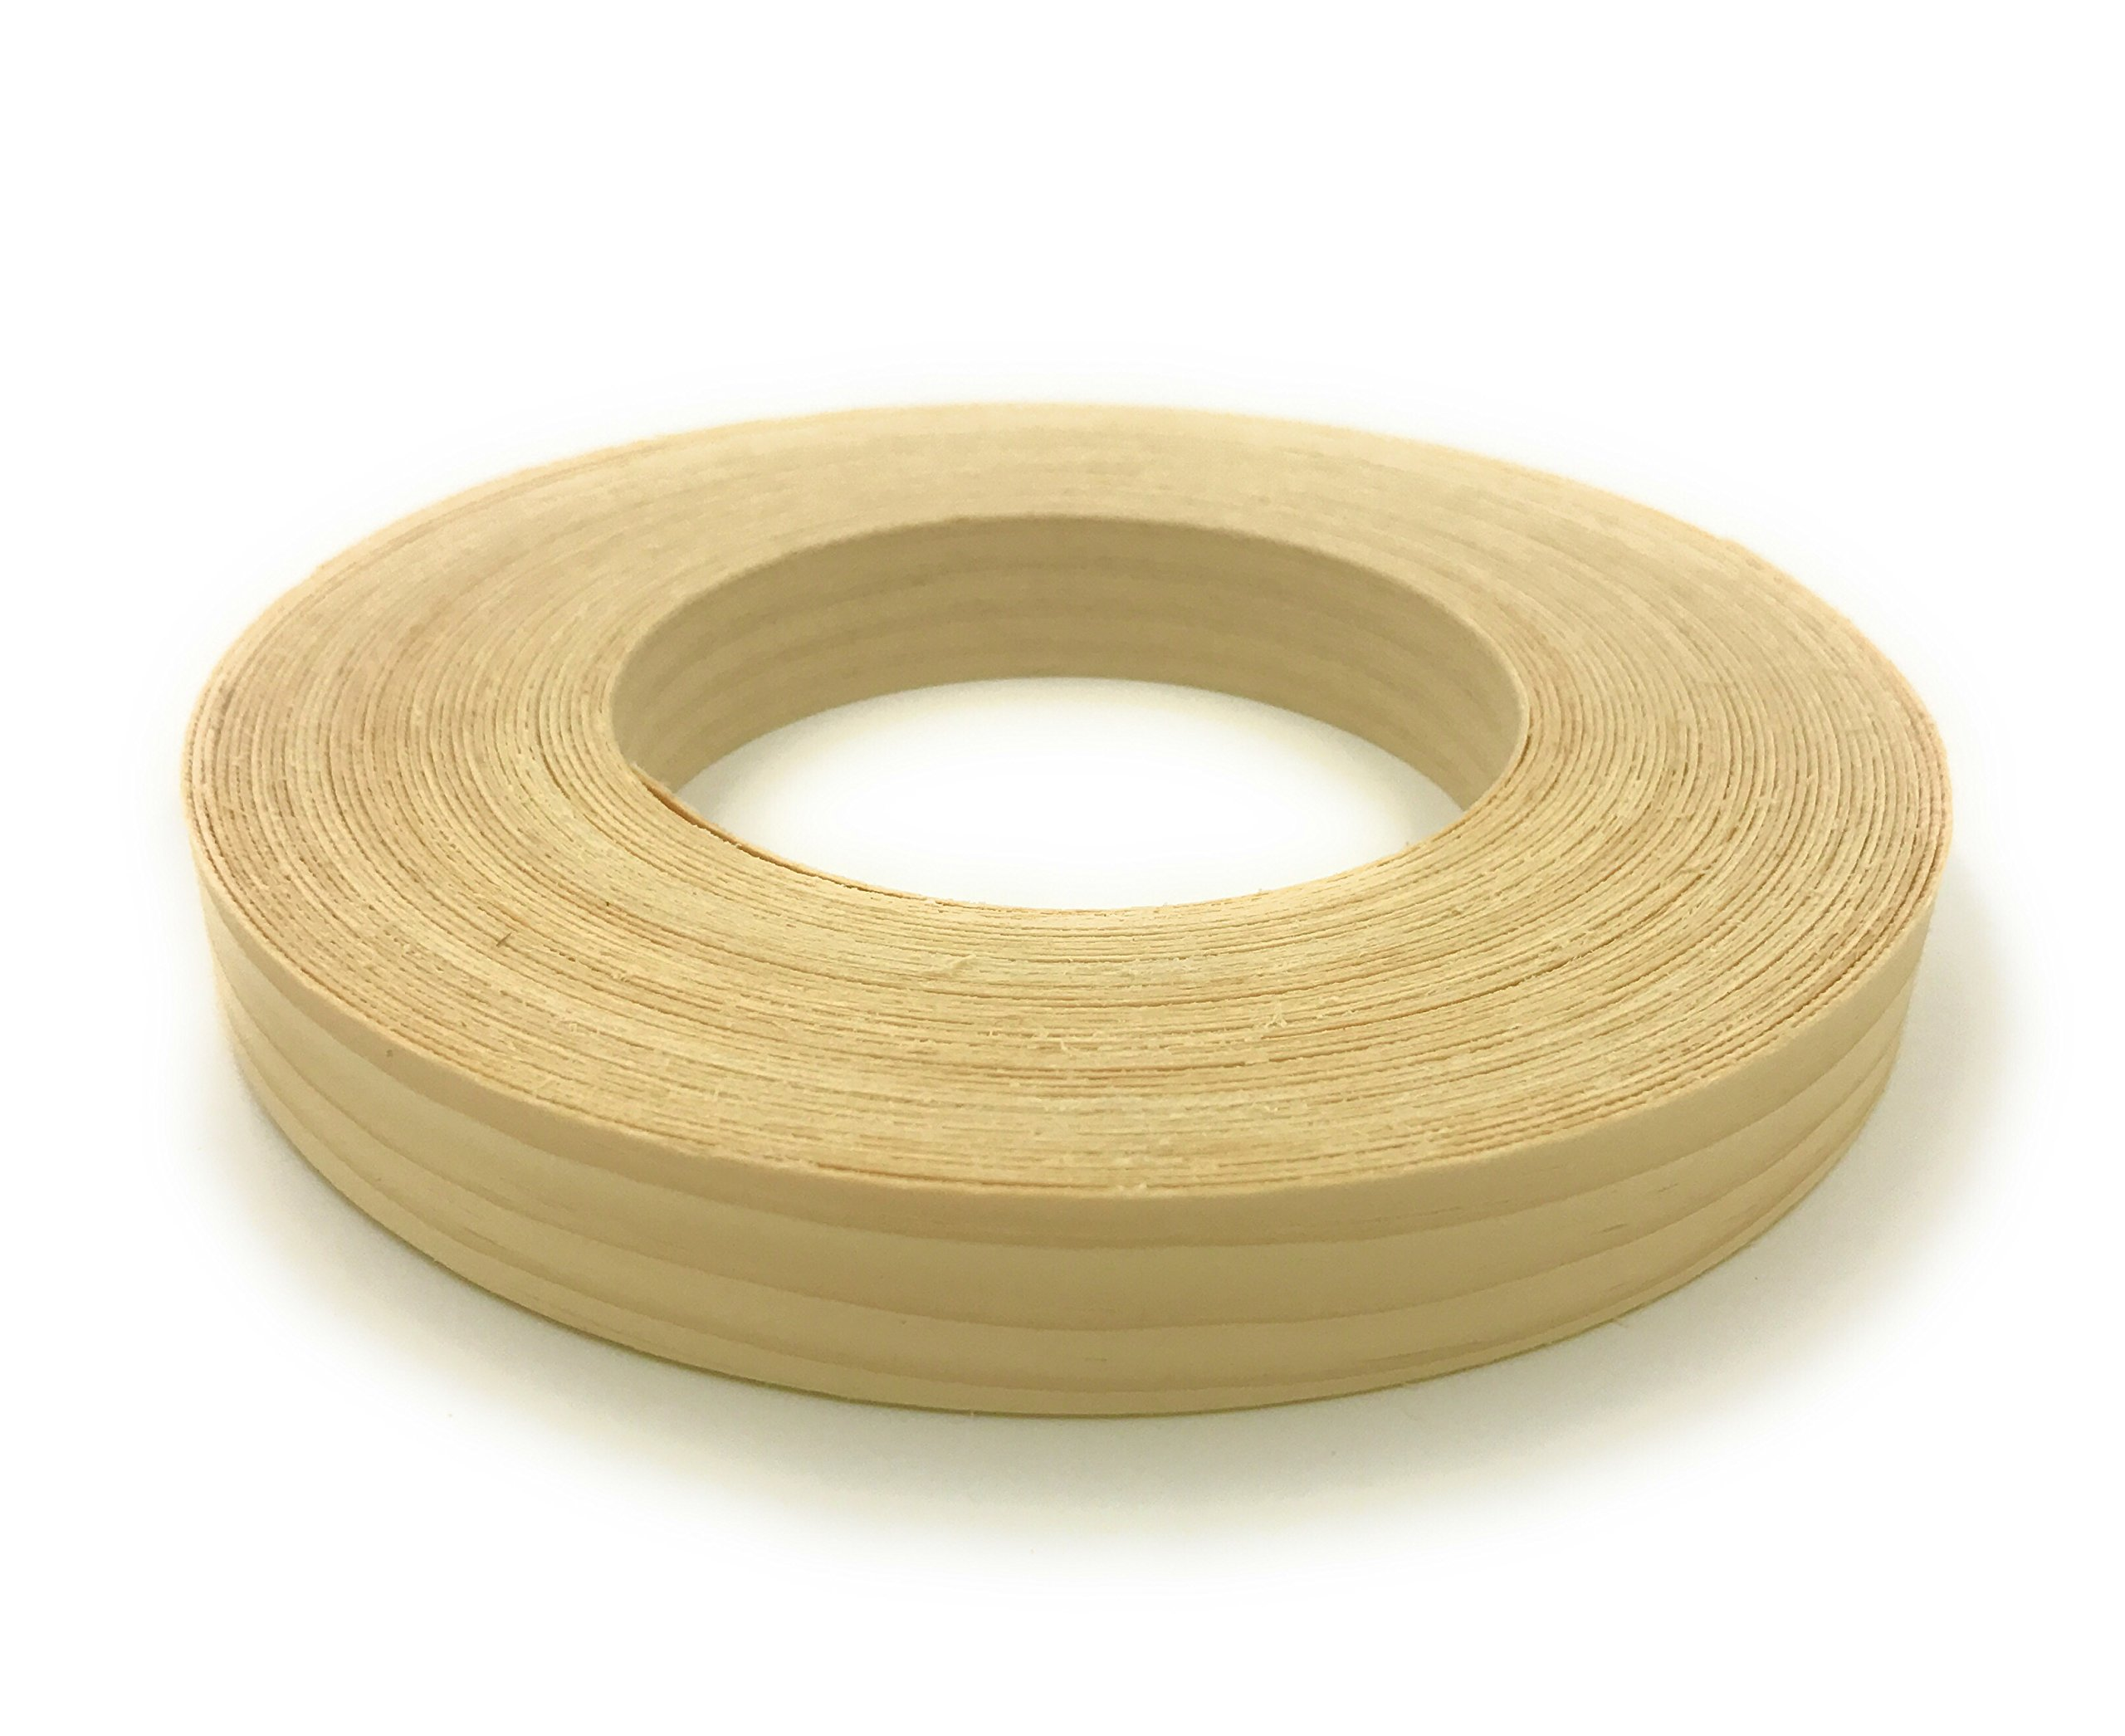 White Pine Preglued 3/4'' X 250' Wood Veneer Edgebanding Roll. Iron on with Hot Melt Adhesive, Sanded to perfection. Easy application, Made in USA.